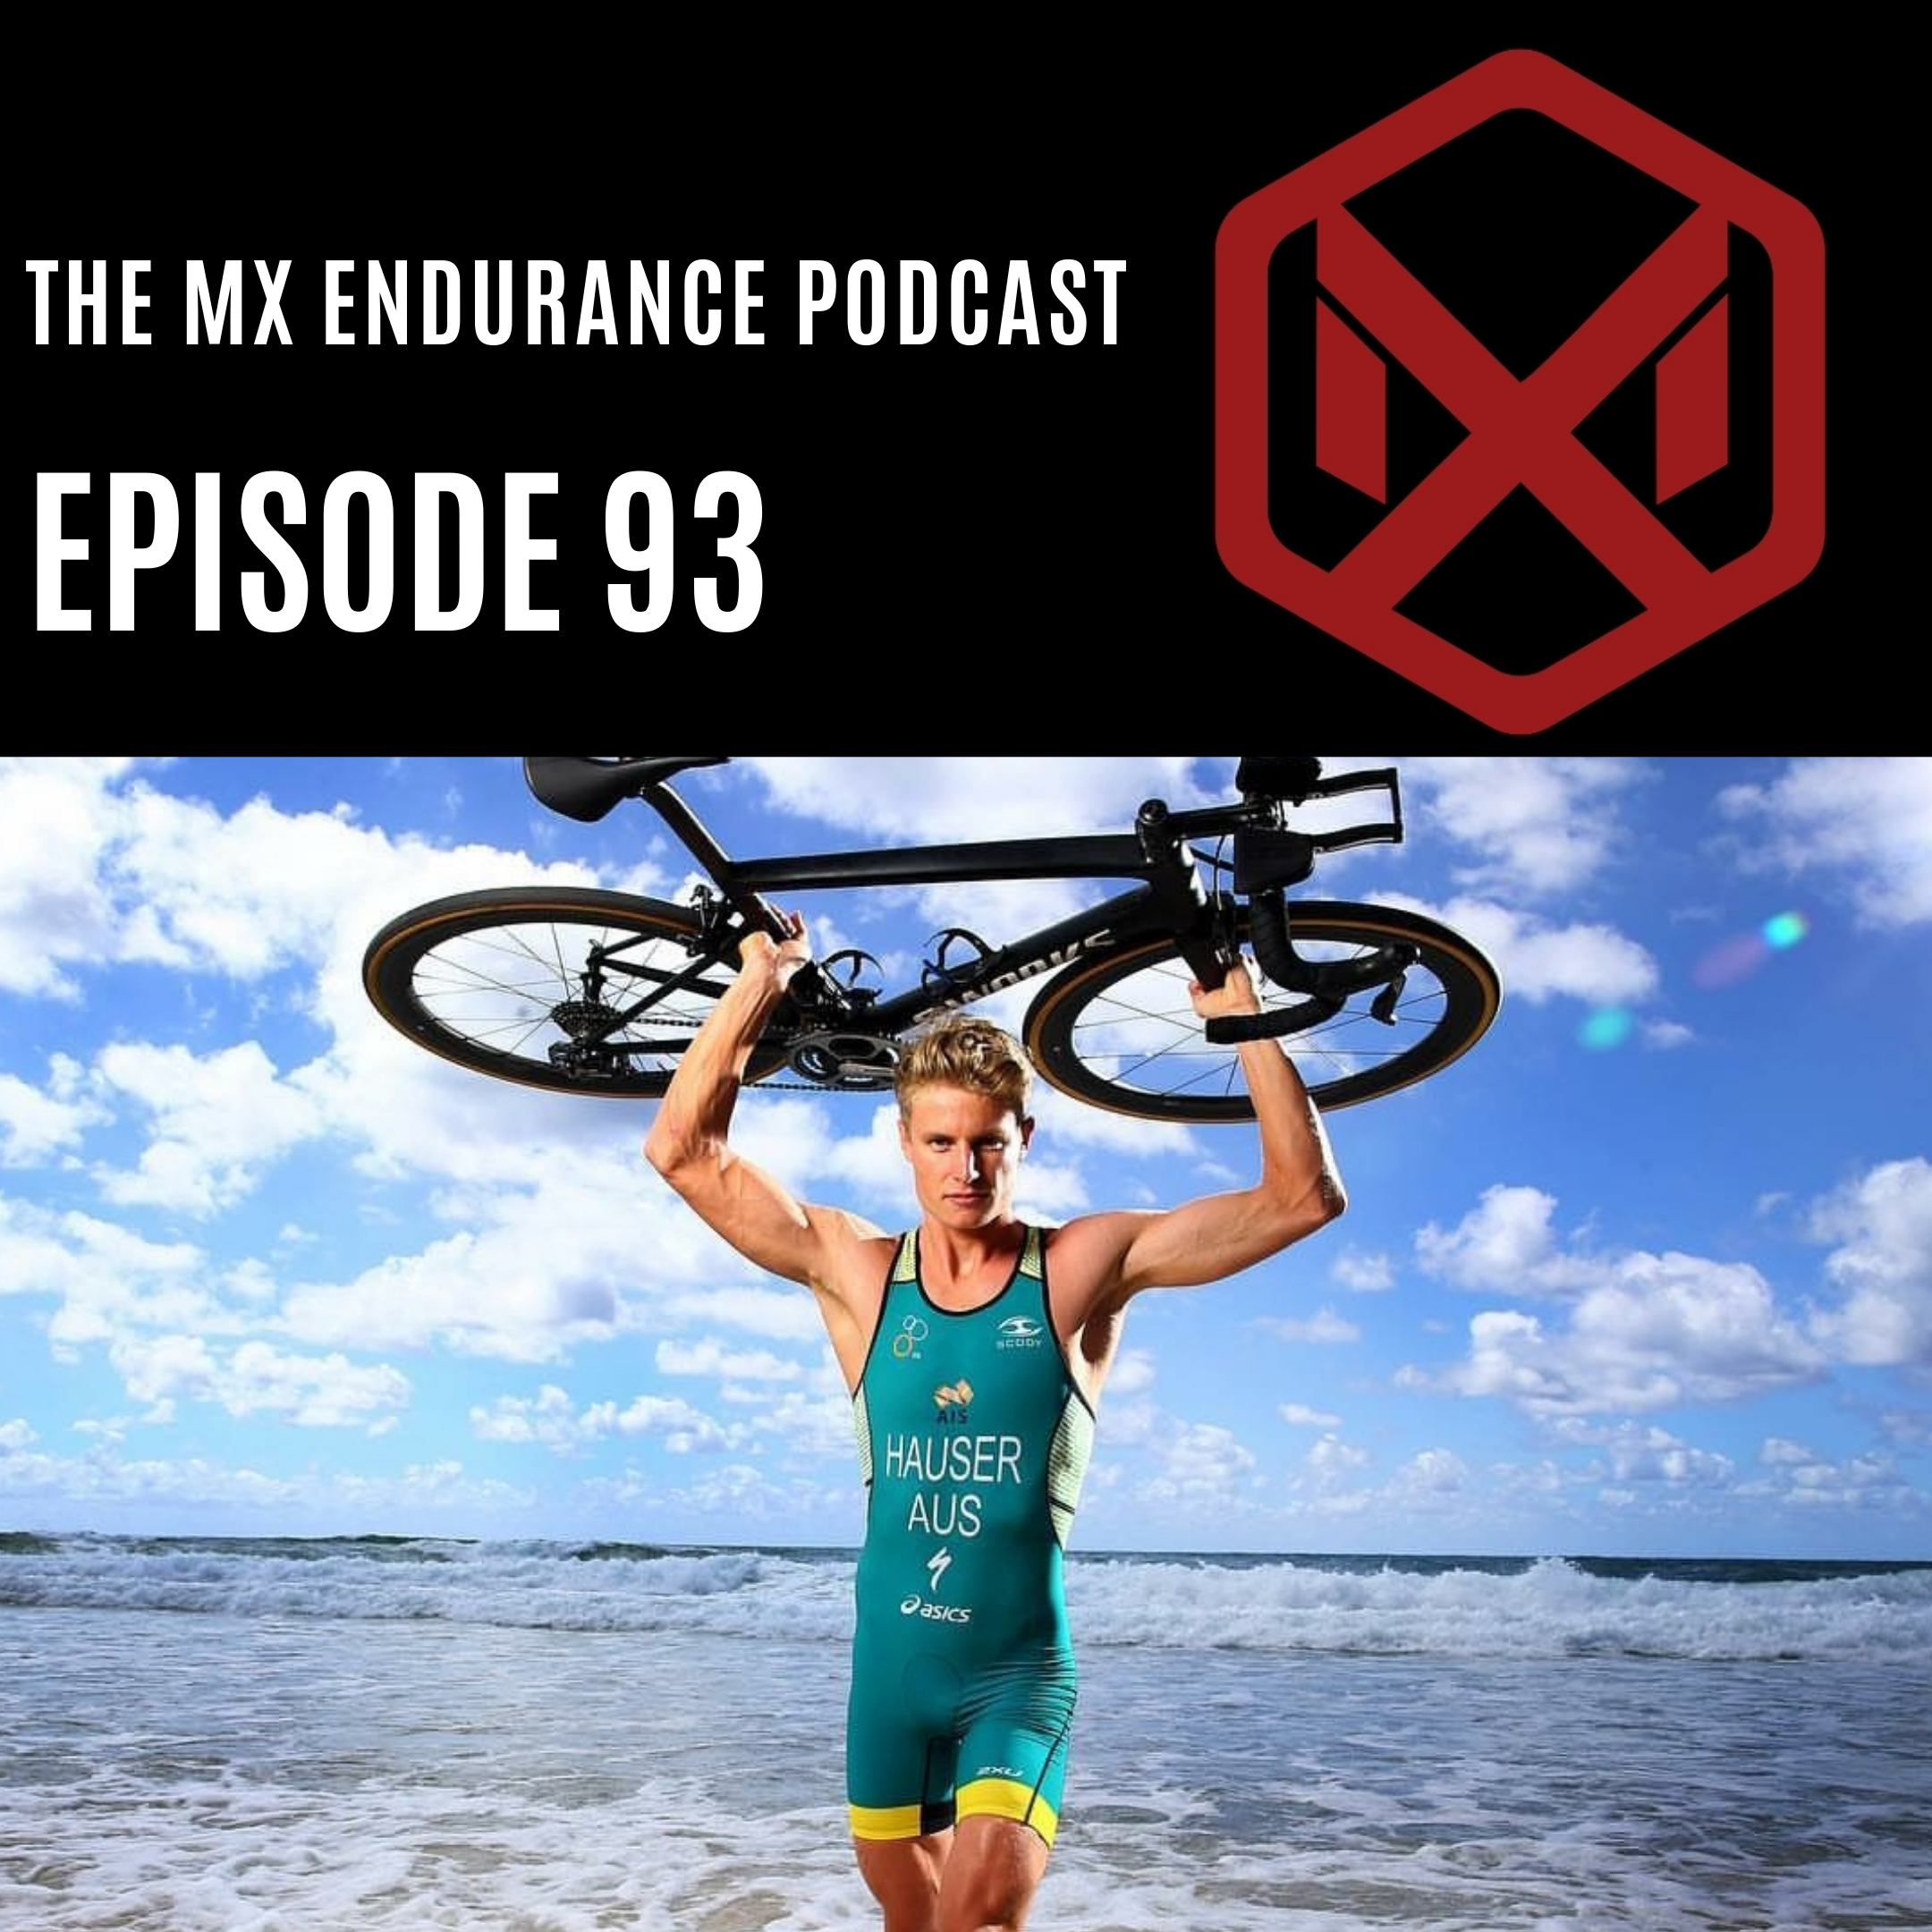 #93 - Commonwealth Games Gold Medalist Matt Hauser